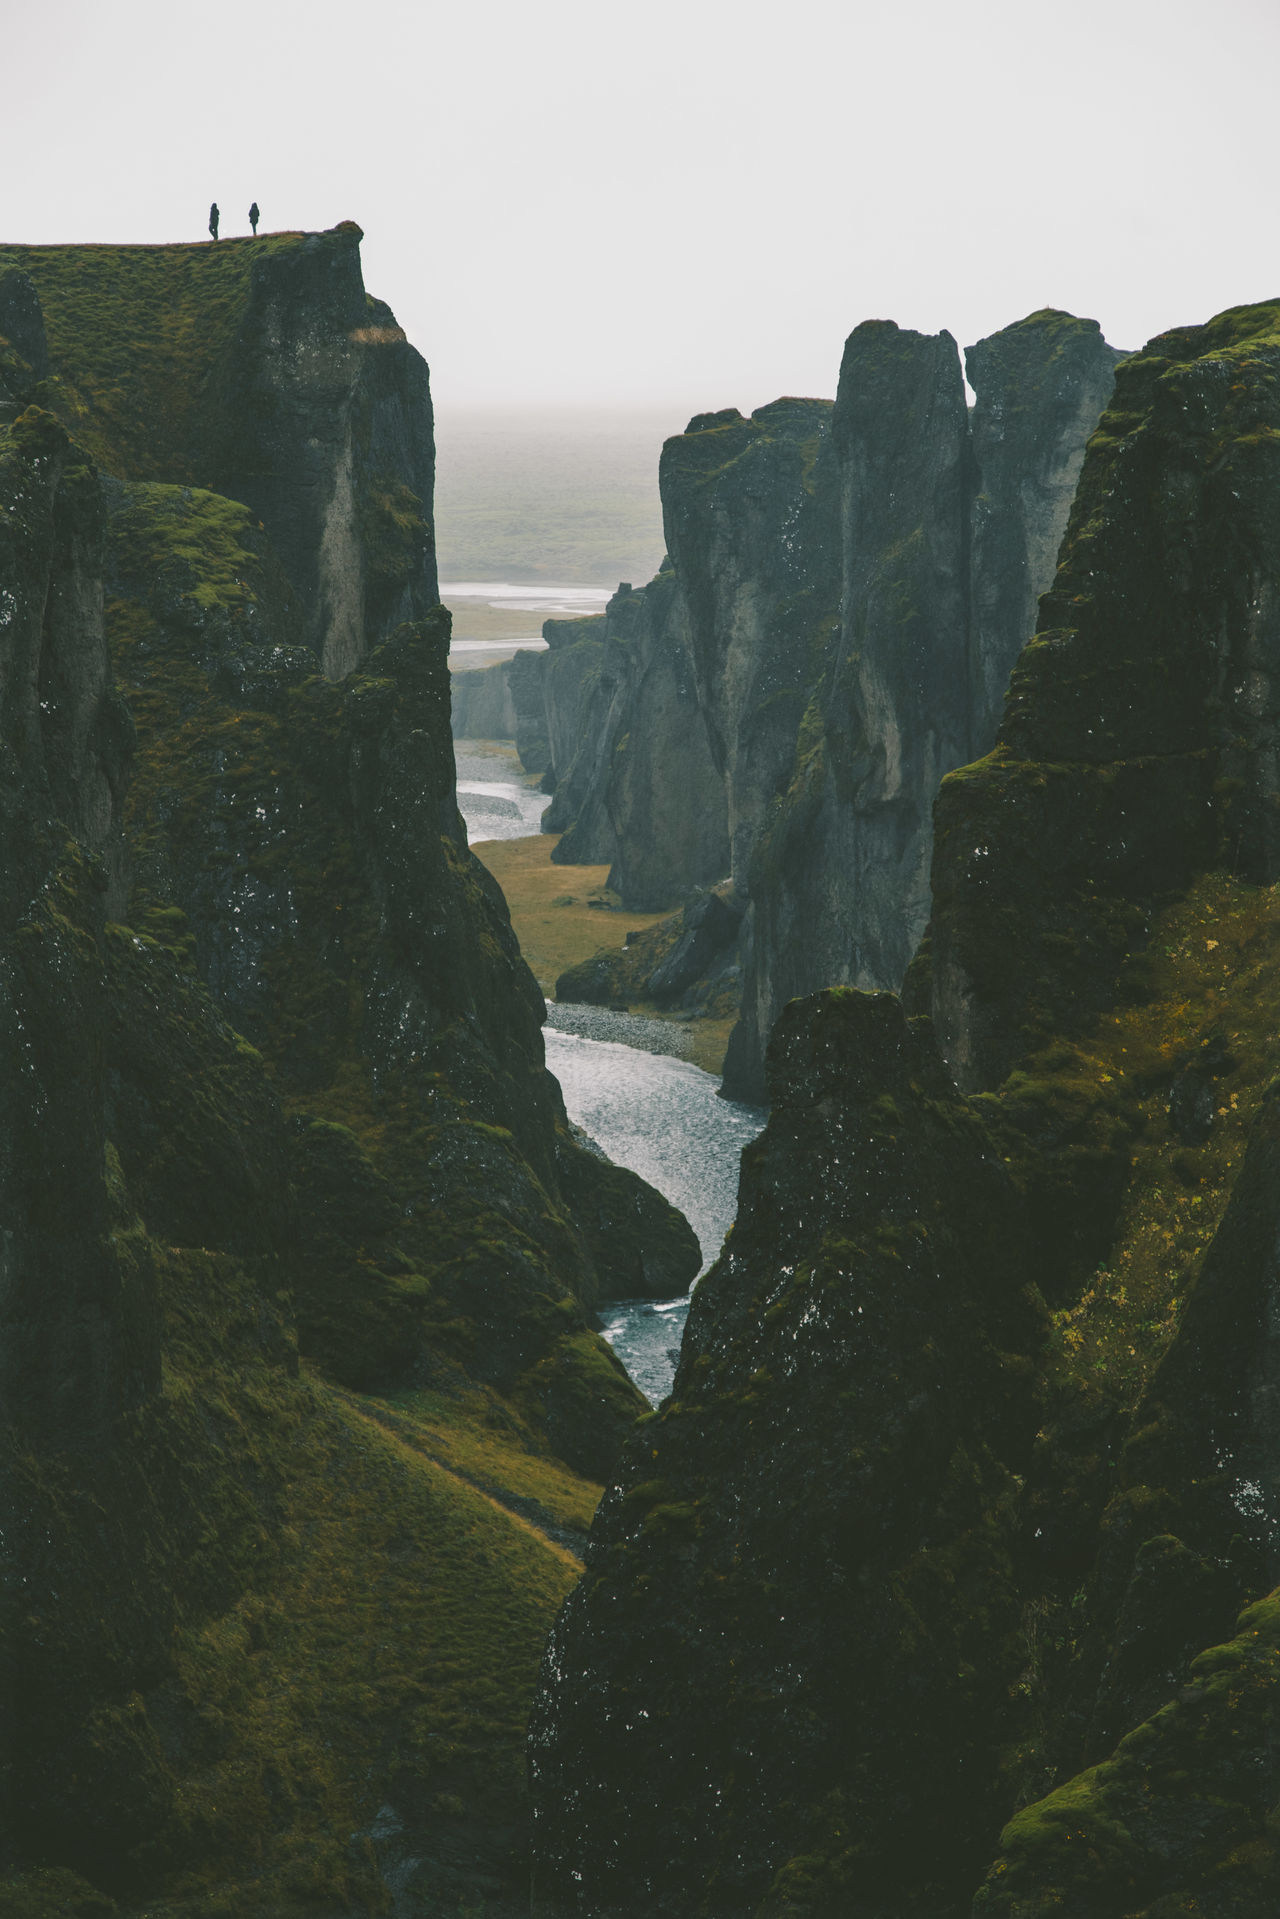 Scenic view of river among cliffs